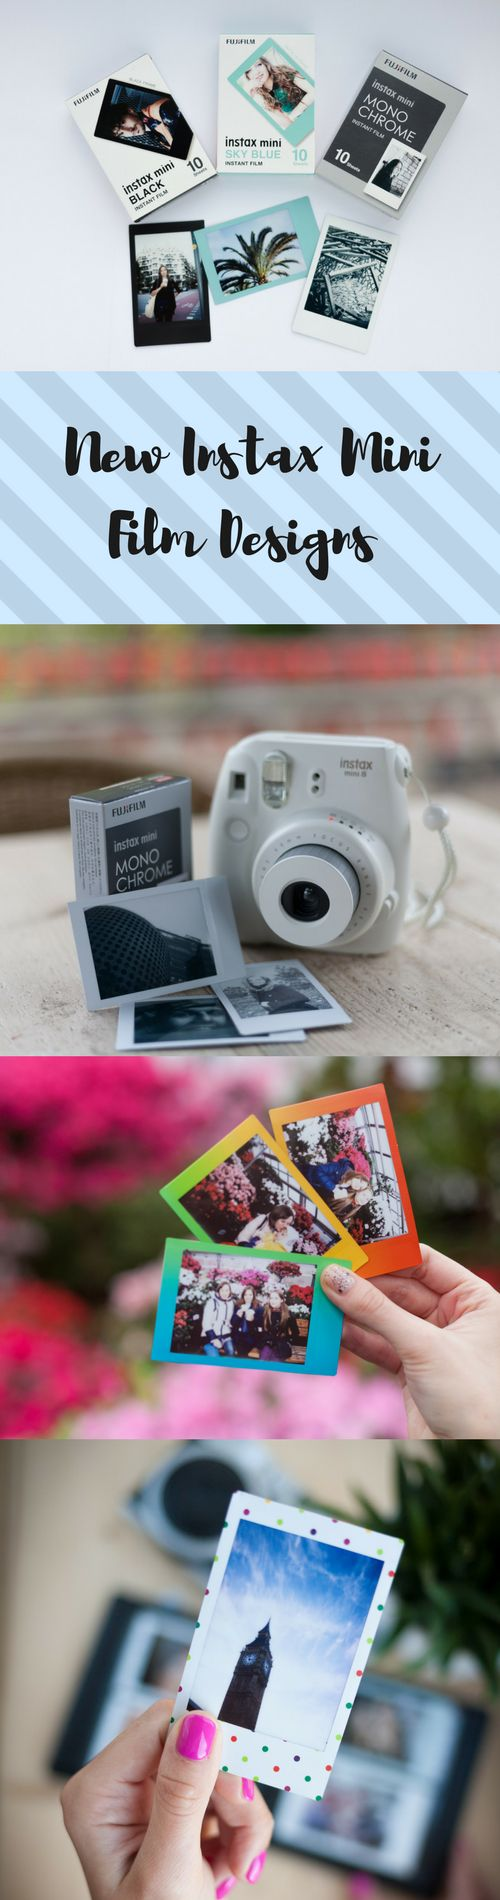 NEW INSTAX MINI FILM DESIGNS! Check out cool Instax Mini film frames! Try out something new for your camera. #Polaroid #Instax #InstaxMini #InstaxFilm #InstantFilm